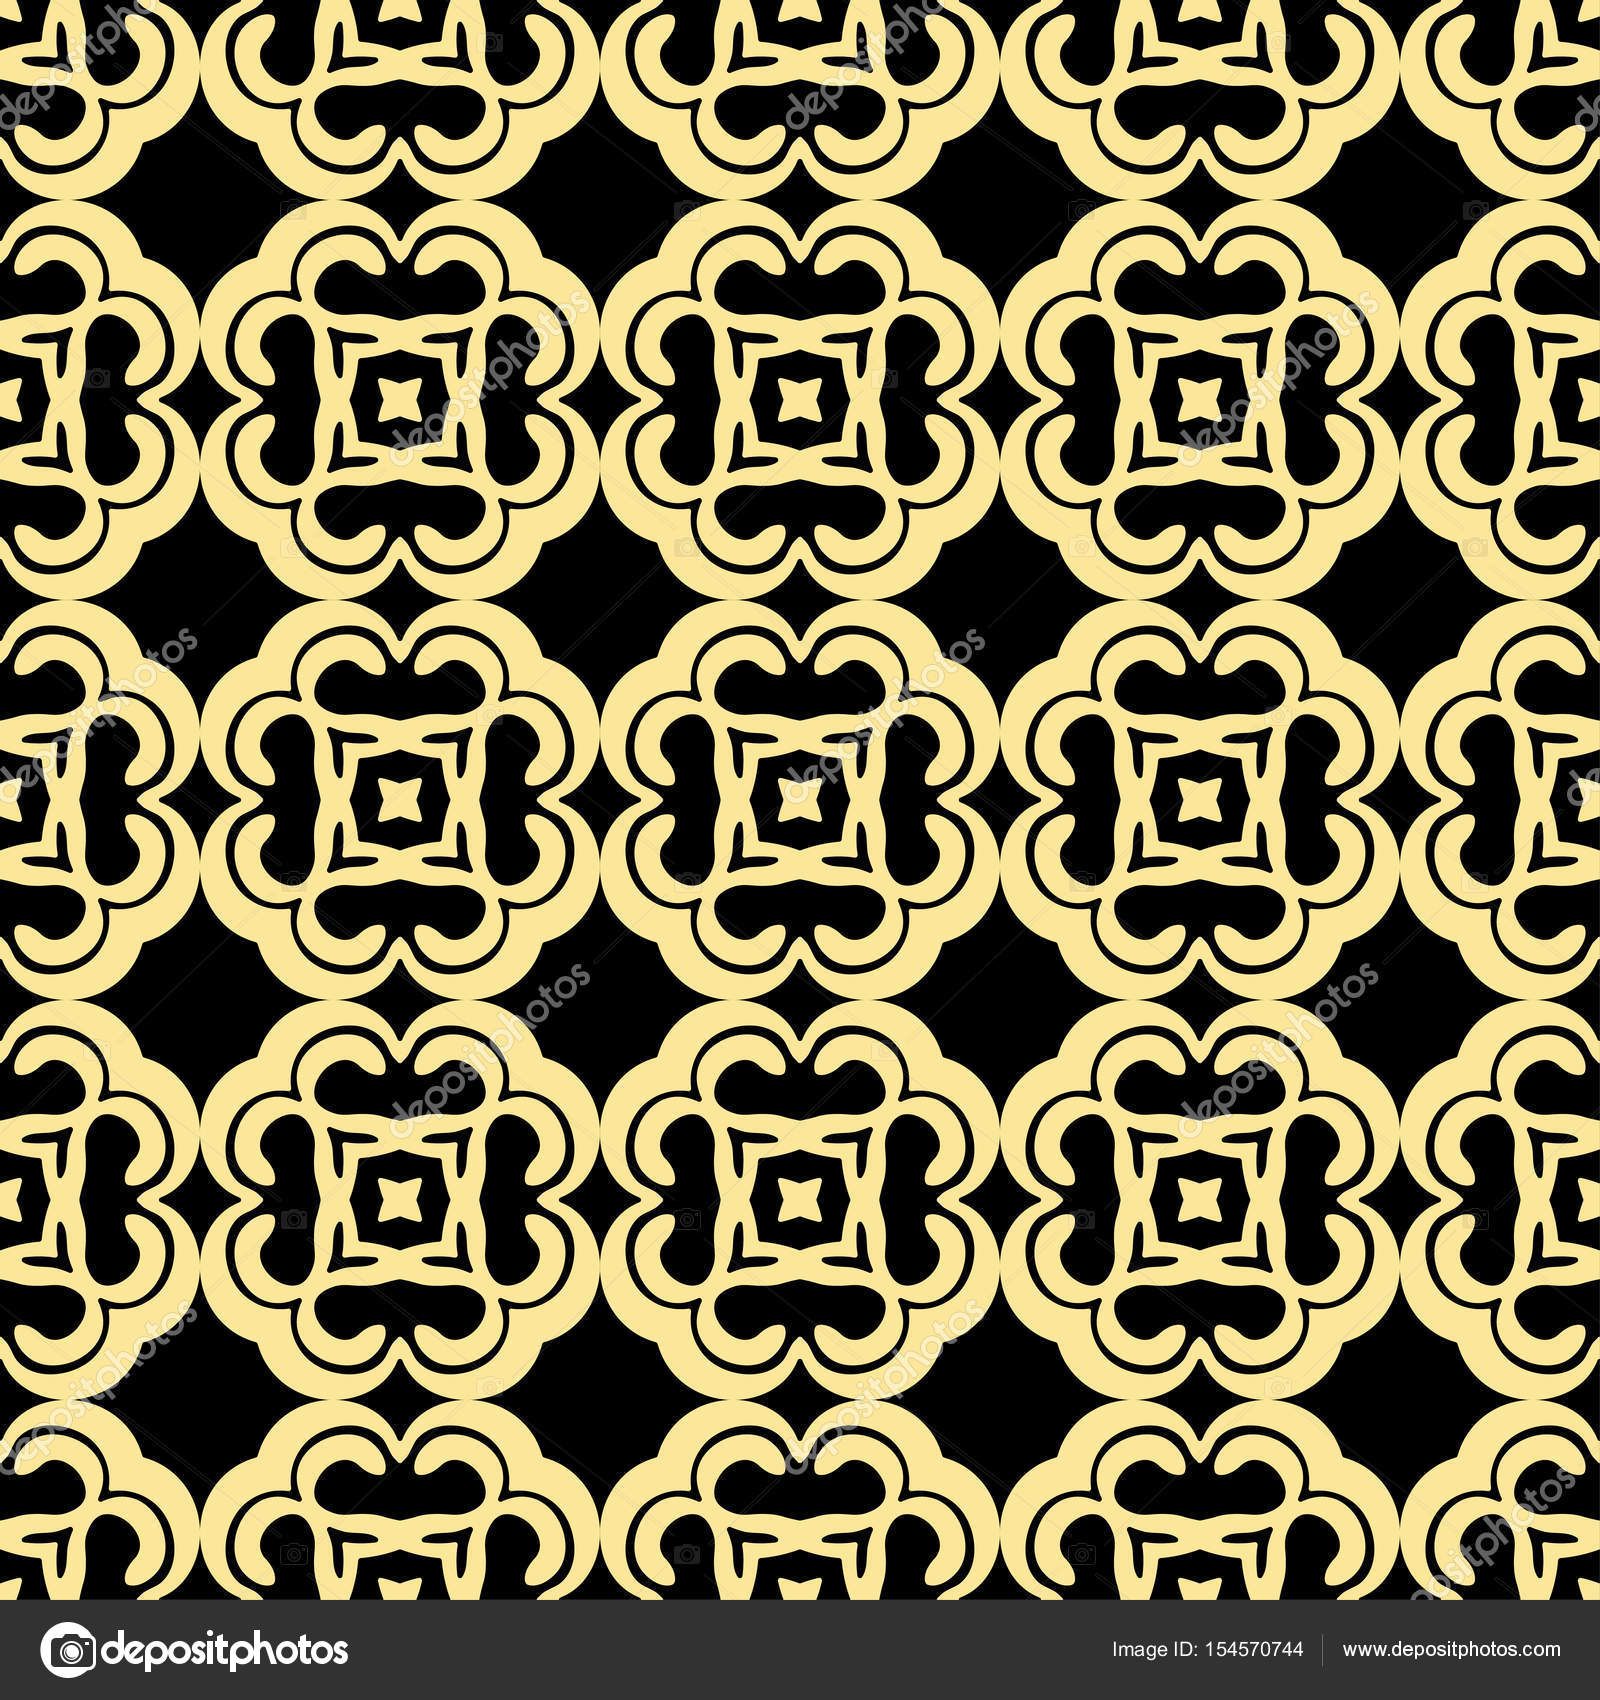 Seamless Floral Geometrical Wallpaper Black And Golden Orange